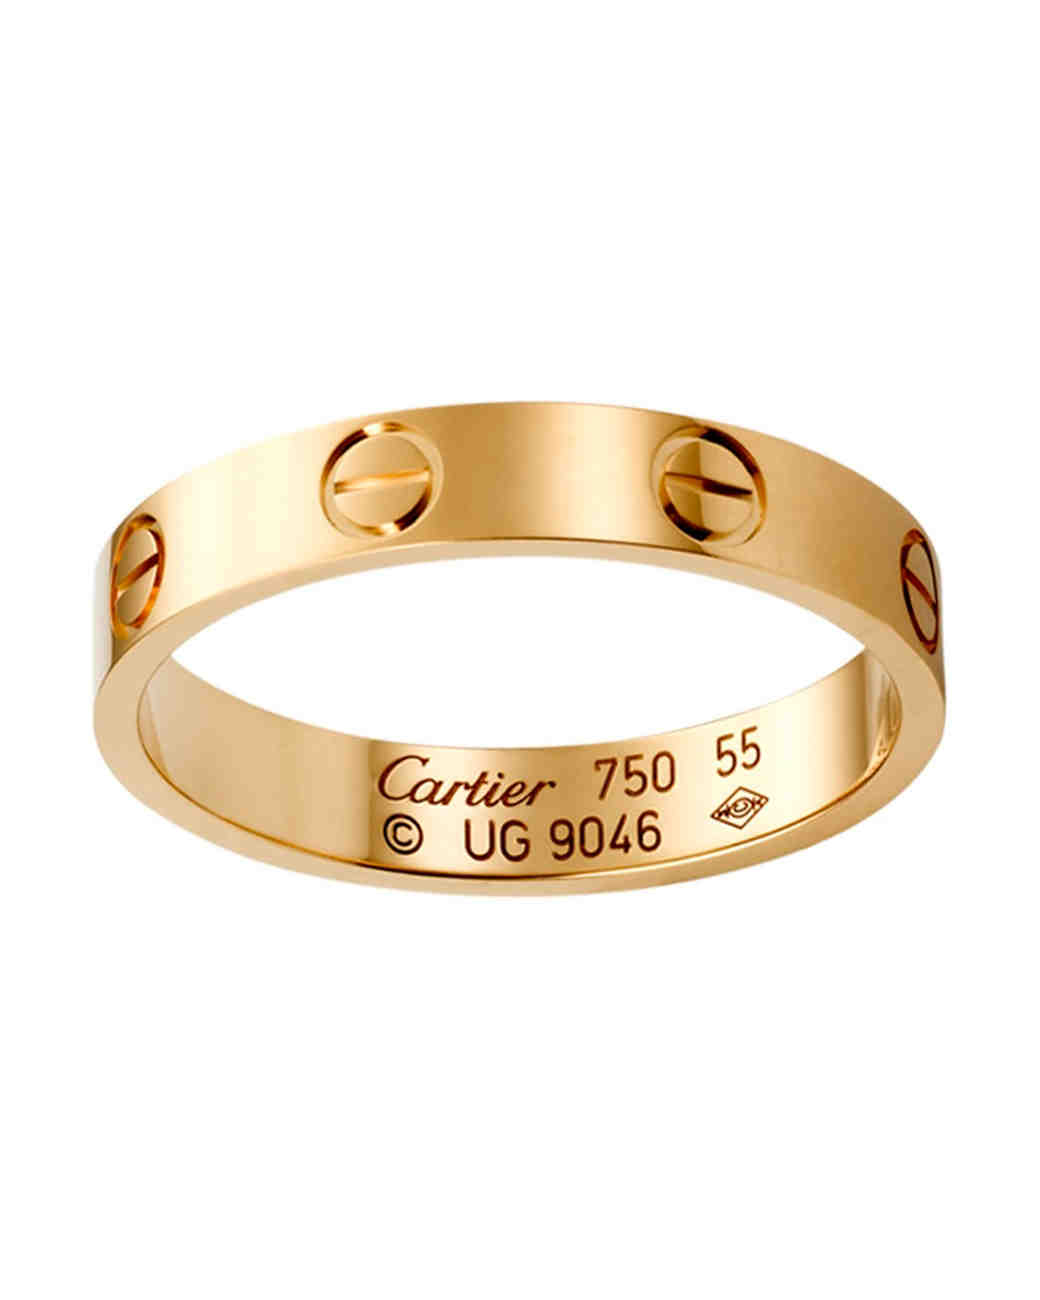 12 Gold Wedding Bands for Women That Weve Taken a Shine To Martha